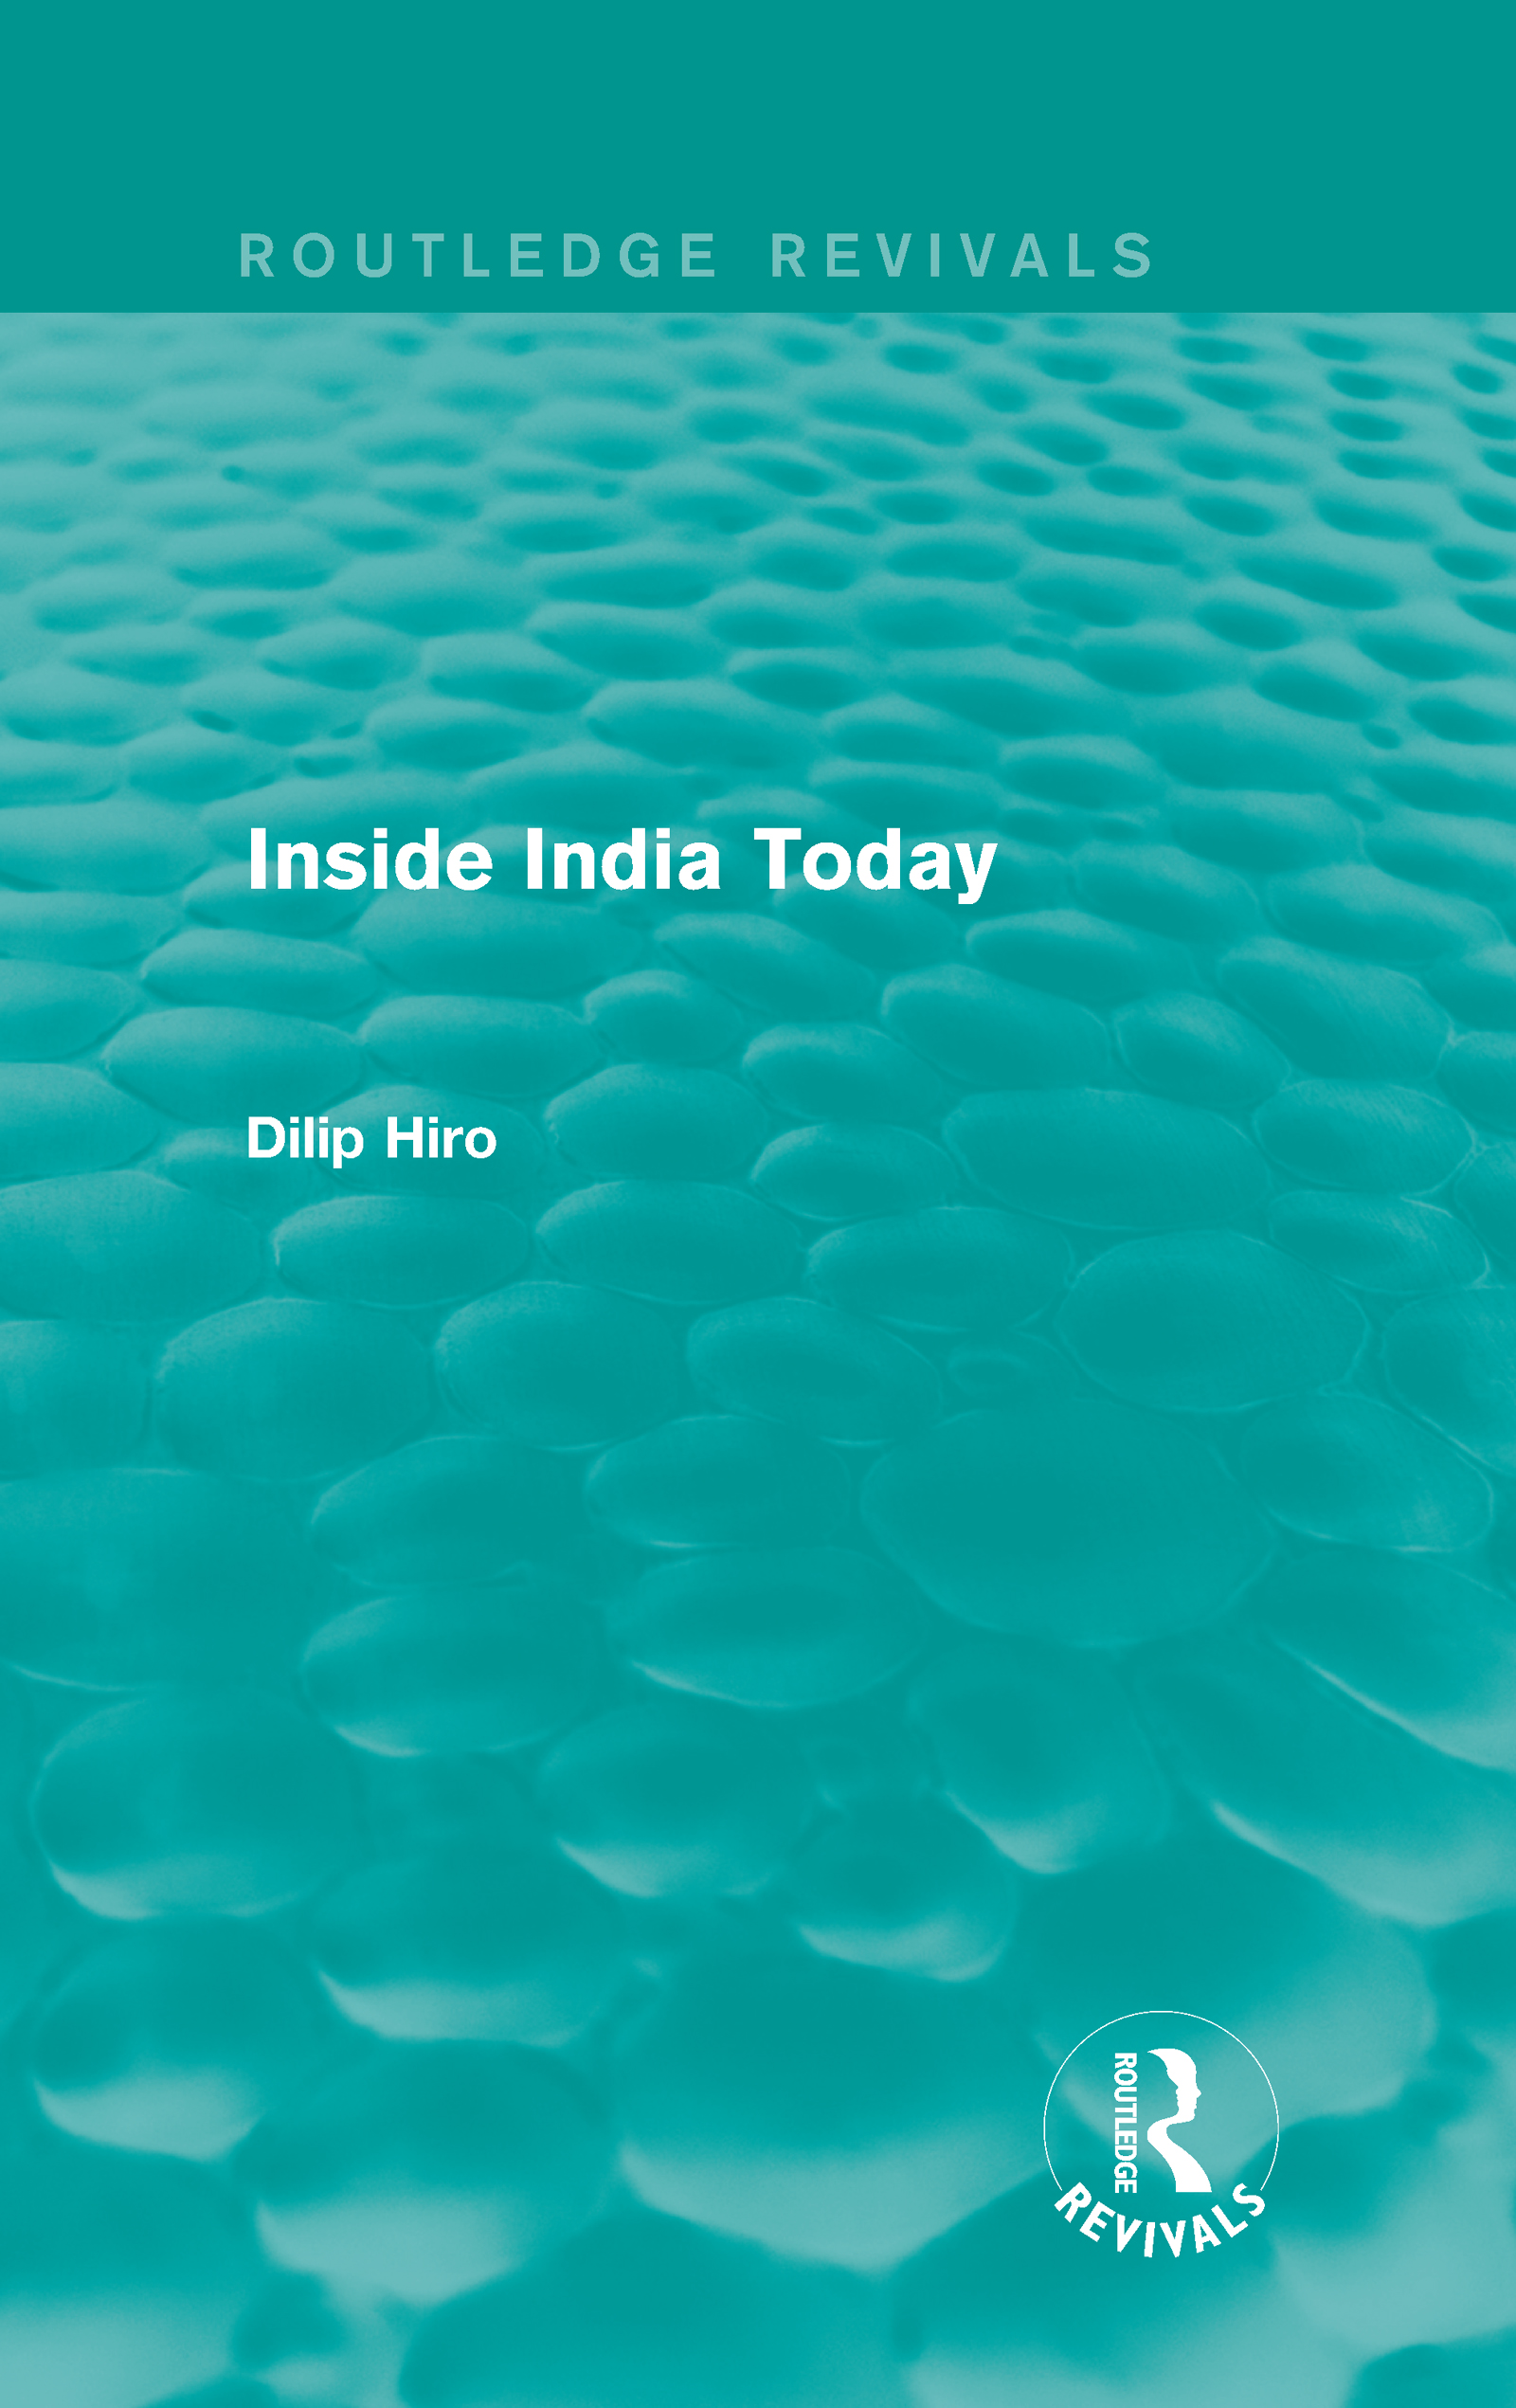 Inside India Today (Routledge Revivals) (Hardback) book cover